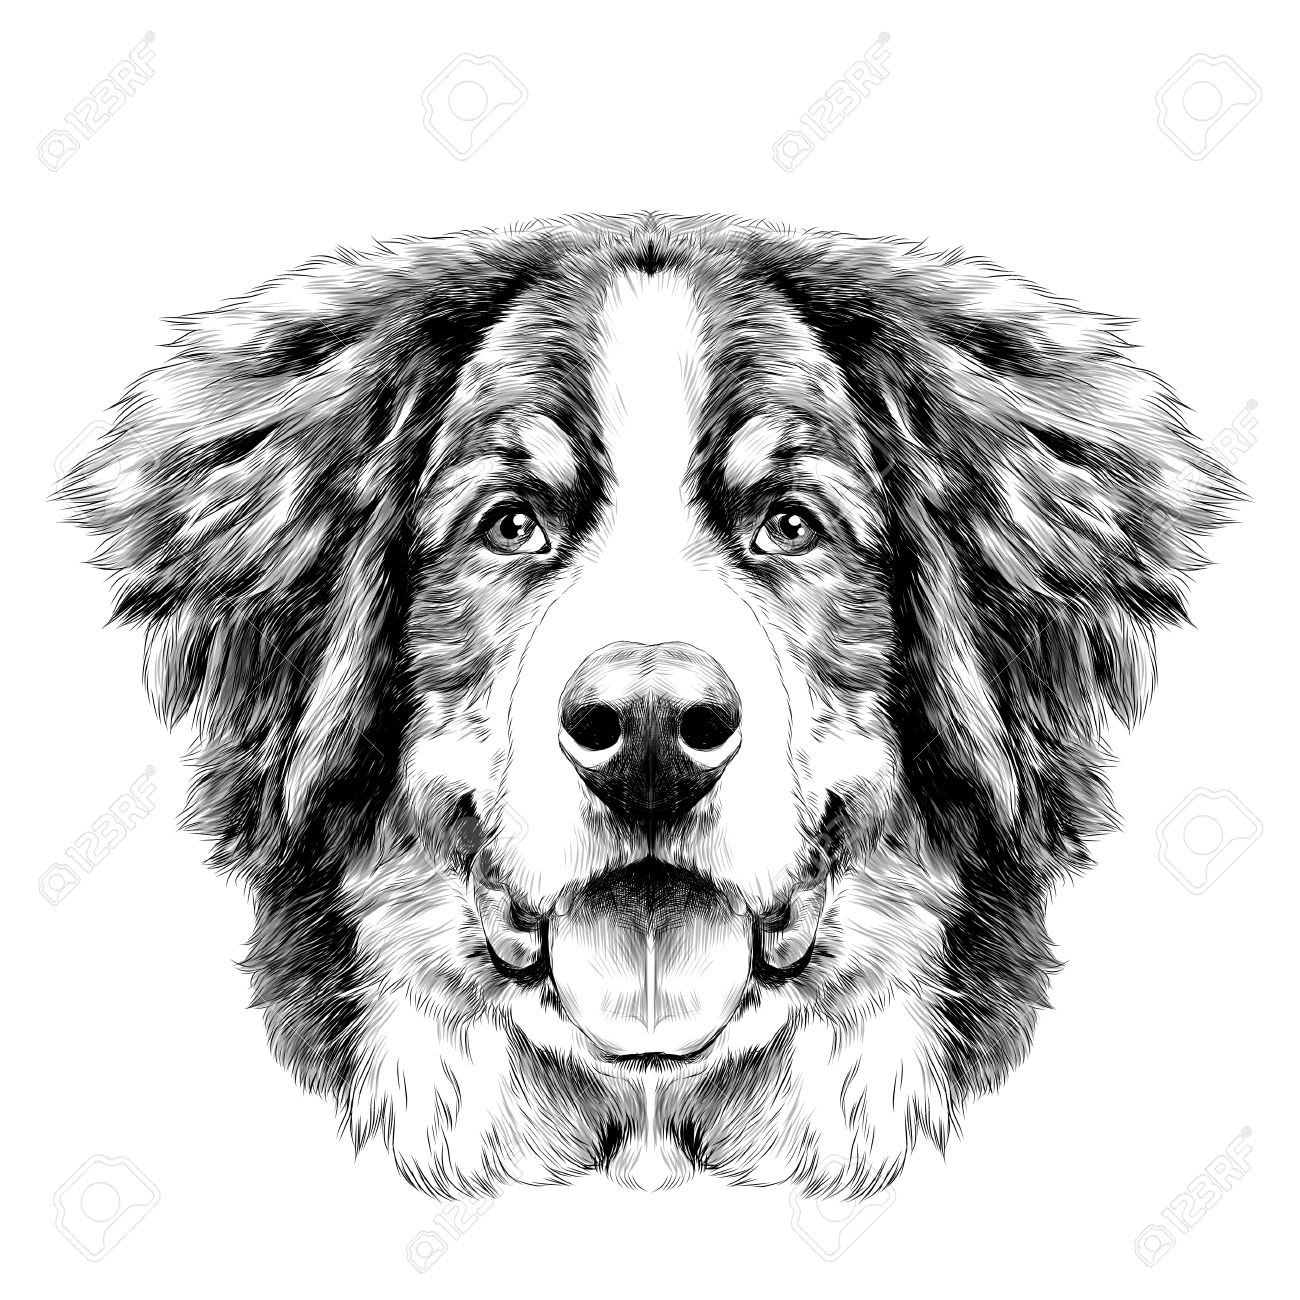 The Dog Head Is Symmetrical Front The Bernese Mountain Dog Sketch